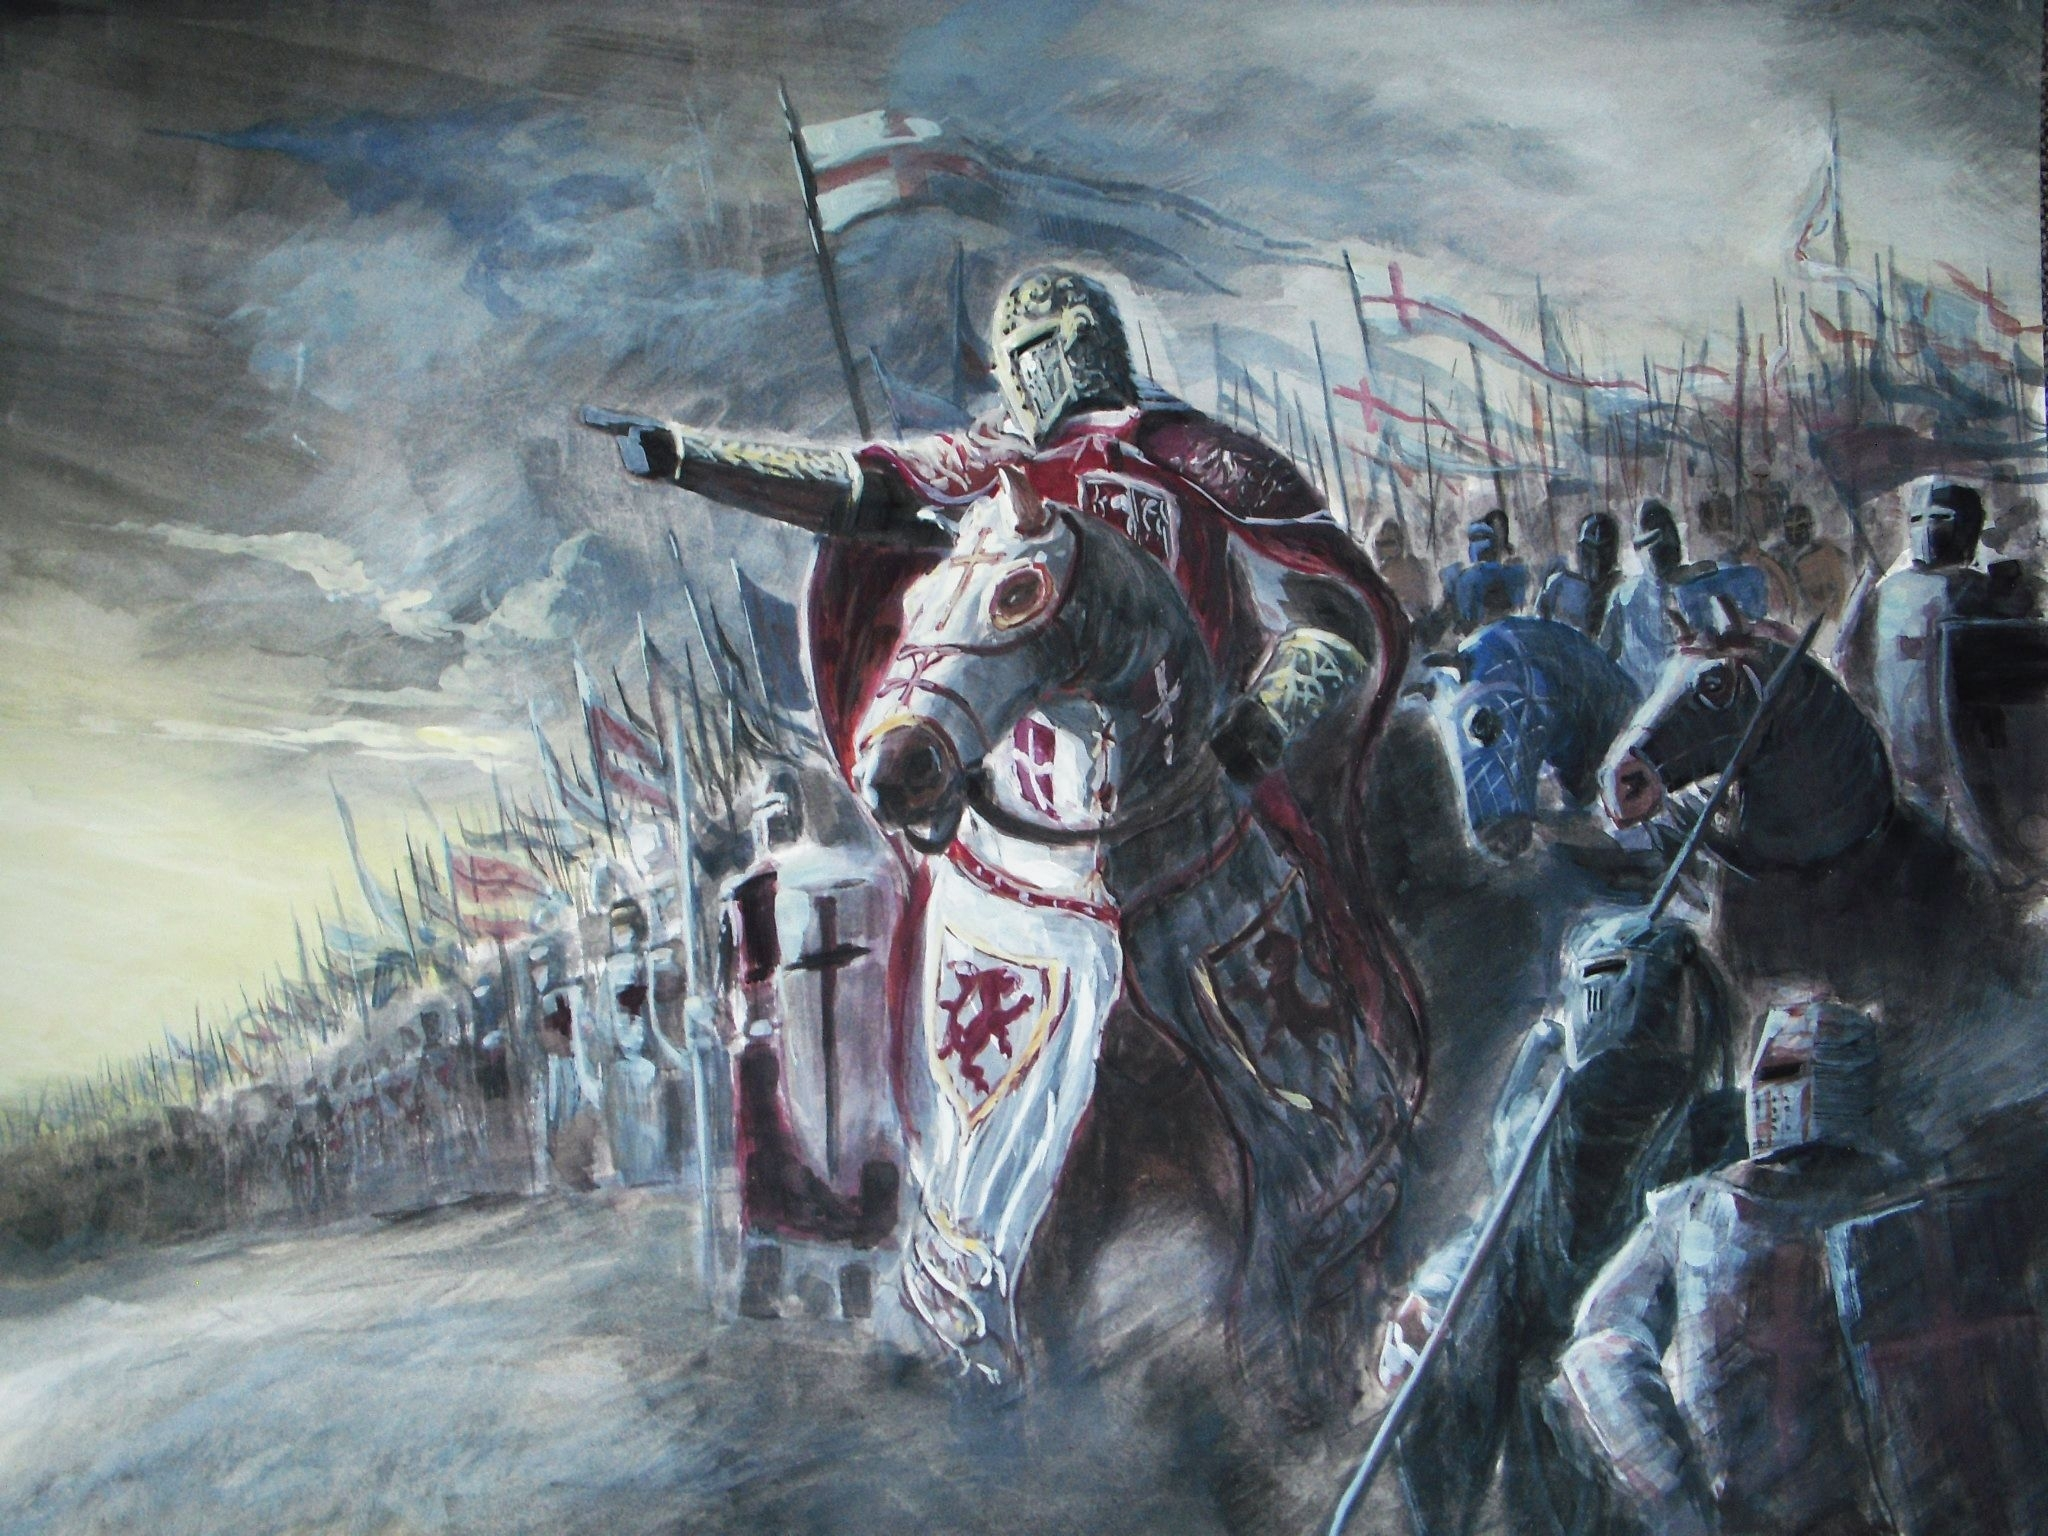 pics for > knight templar wallpaper hd | knights templar | pinterest